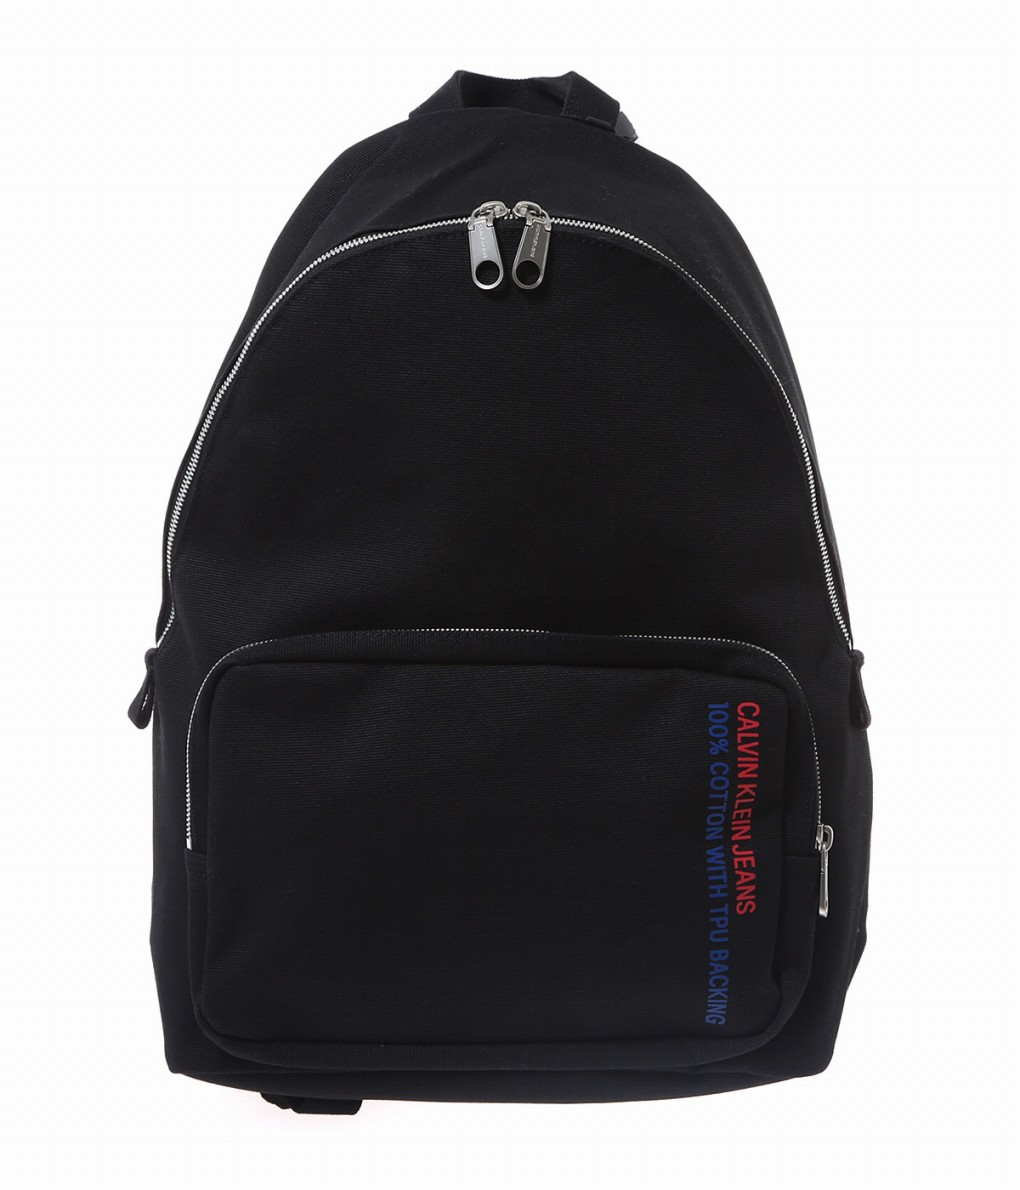 Calvin Klein Jeans / カルバンクラインジーンズ : MEN'S CAMPUS BACKPACK : キャンパス バックパック リュック メンズ : HH1773C7700 【WAX】